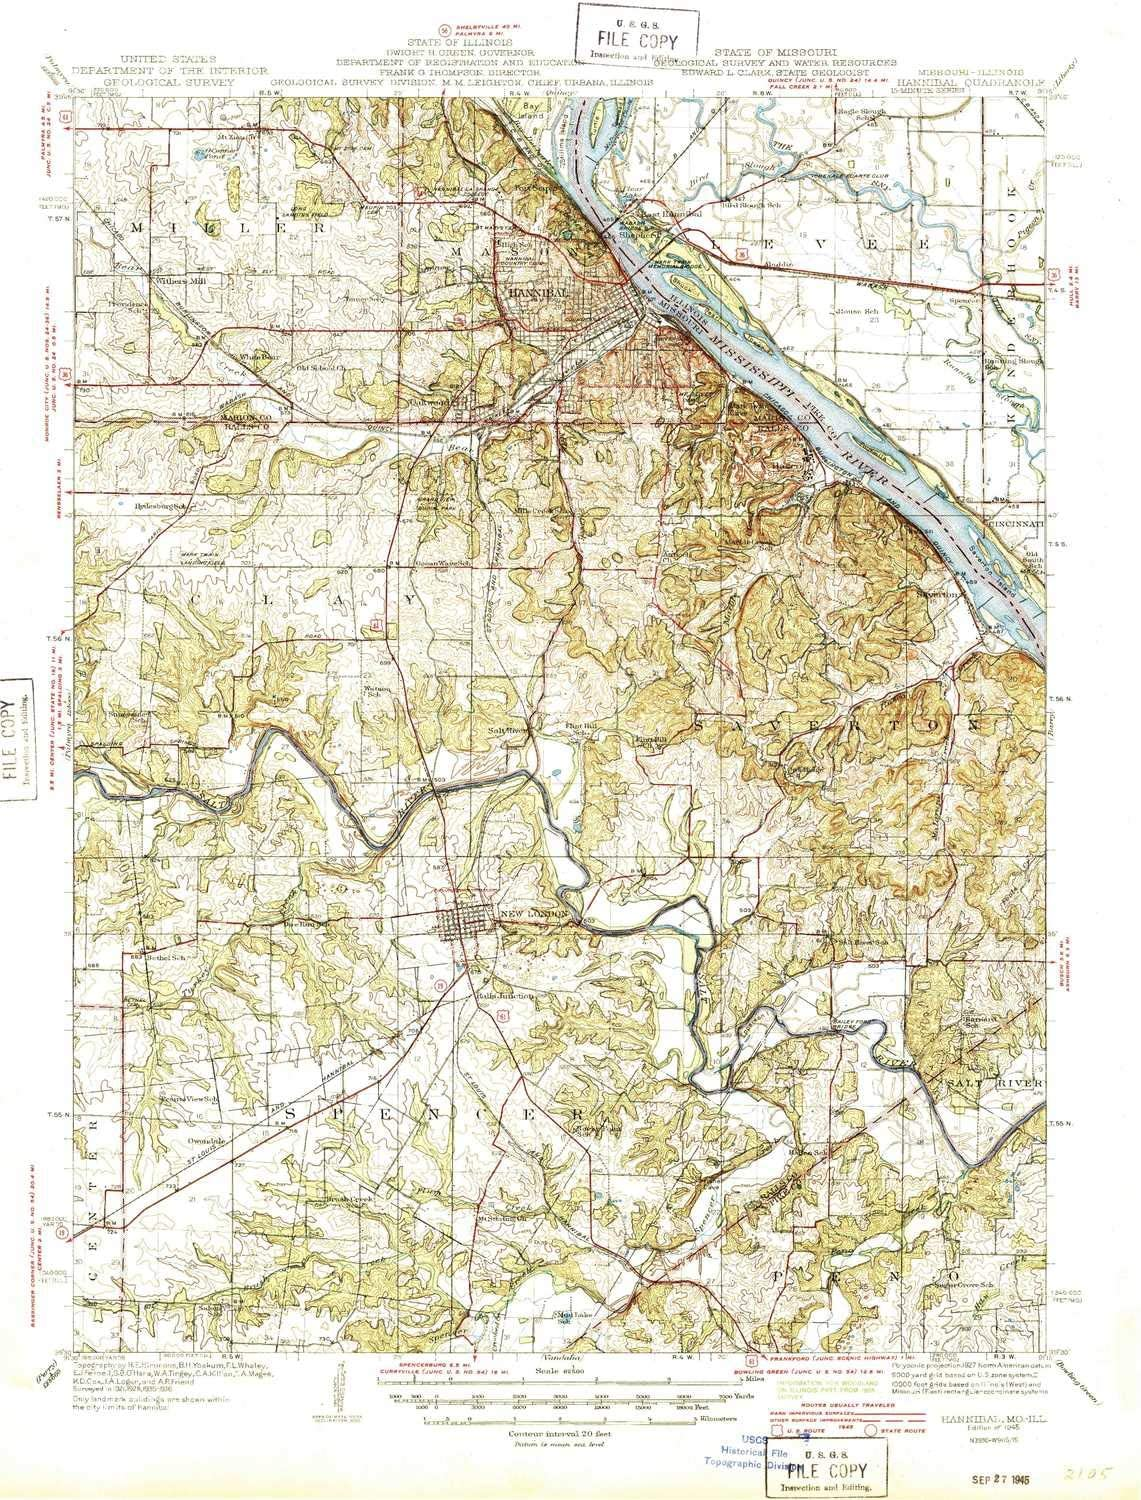 Amazon Com Yellowmaps Hannibal Mo Topo Map 1 62500 Scale 15 X 15 Minute Historical 1945 20 8 X 15 9 In Polypropylene Sports Outdoors